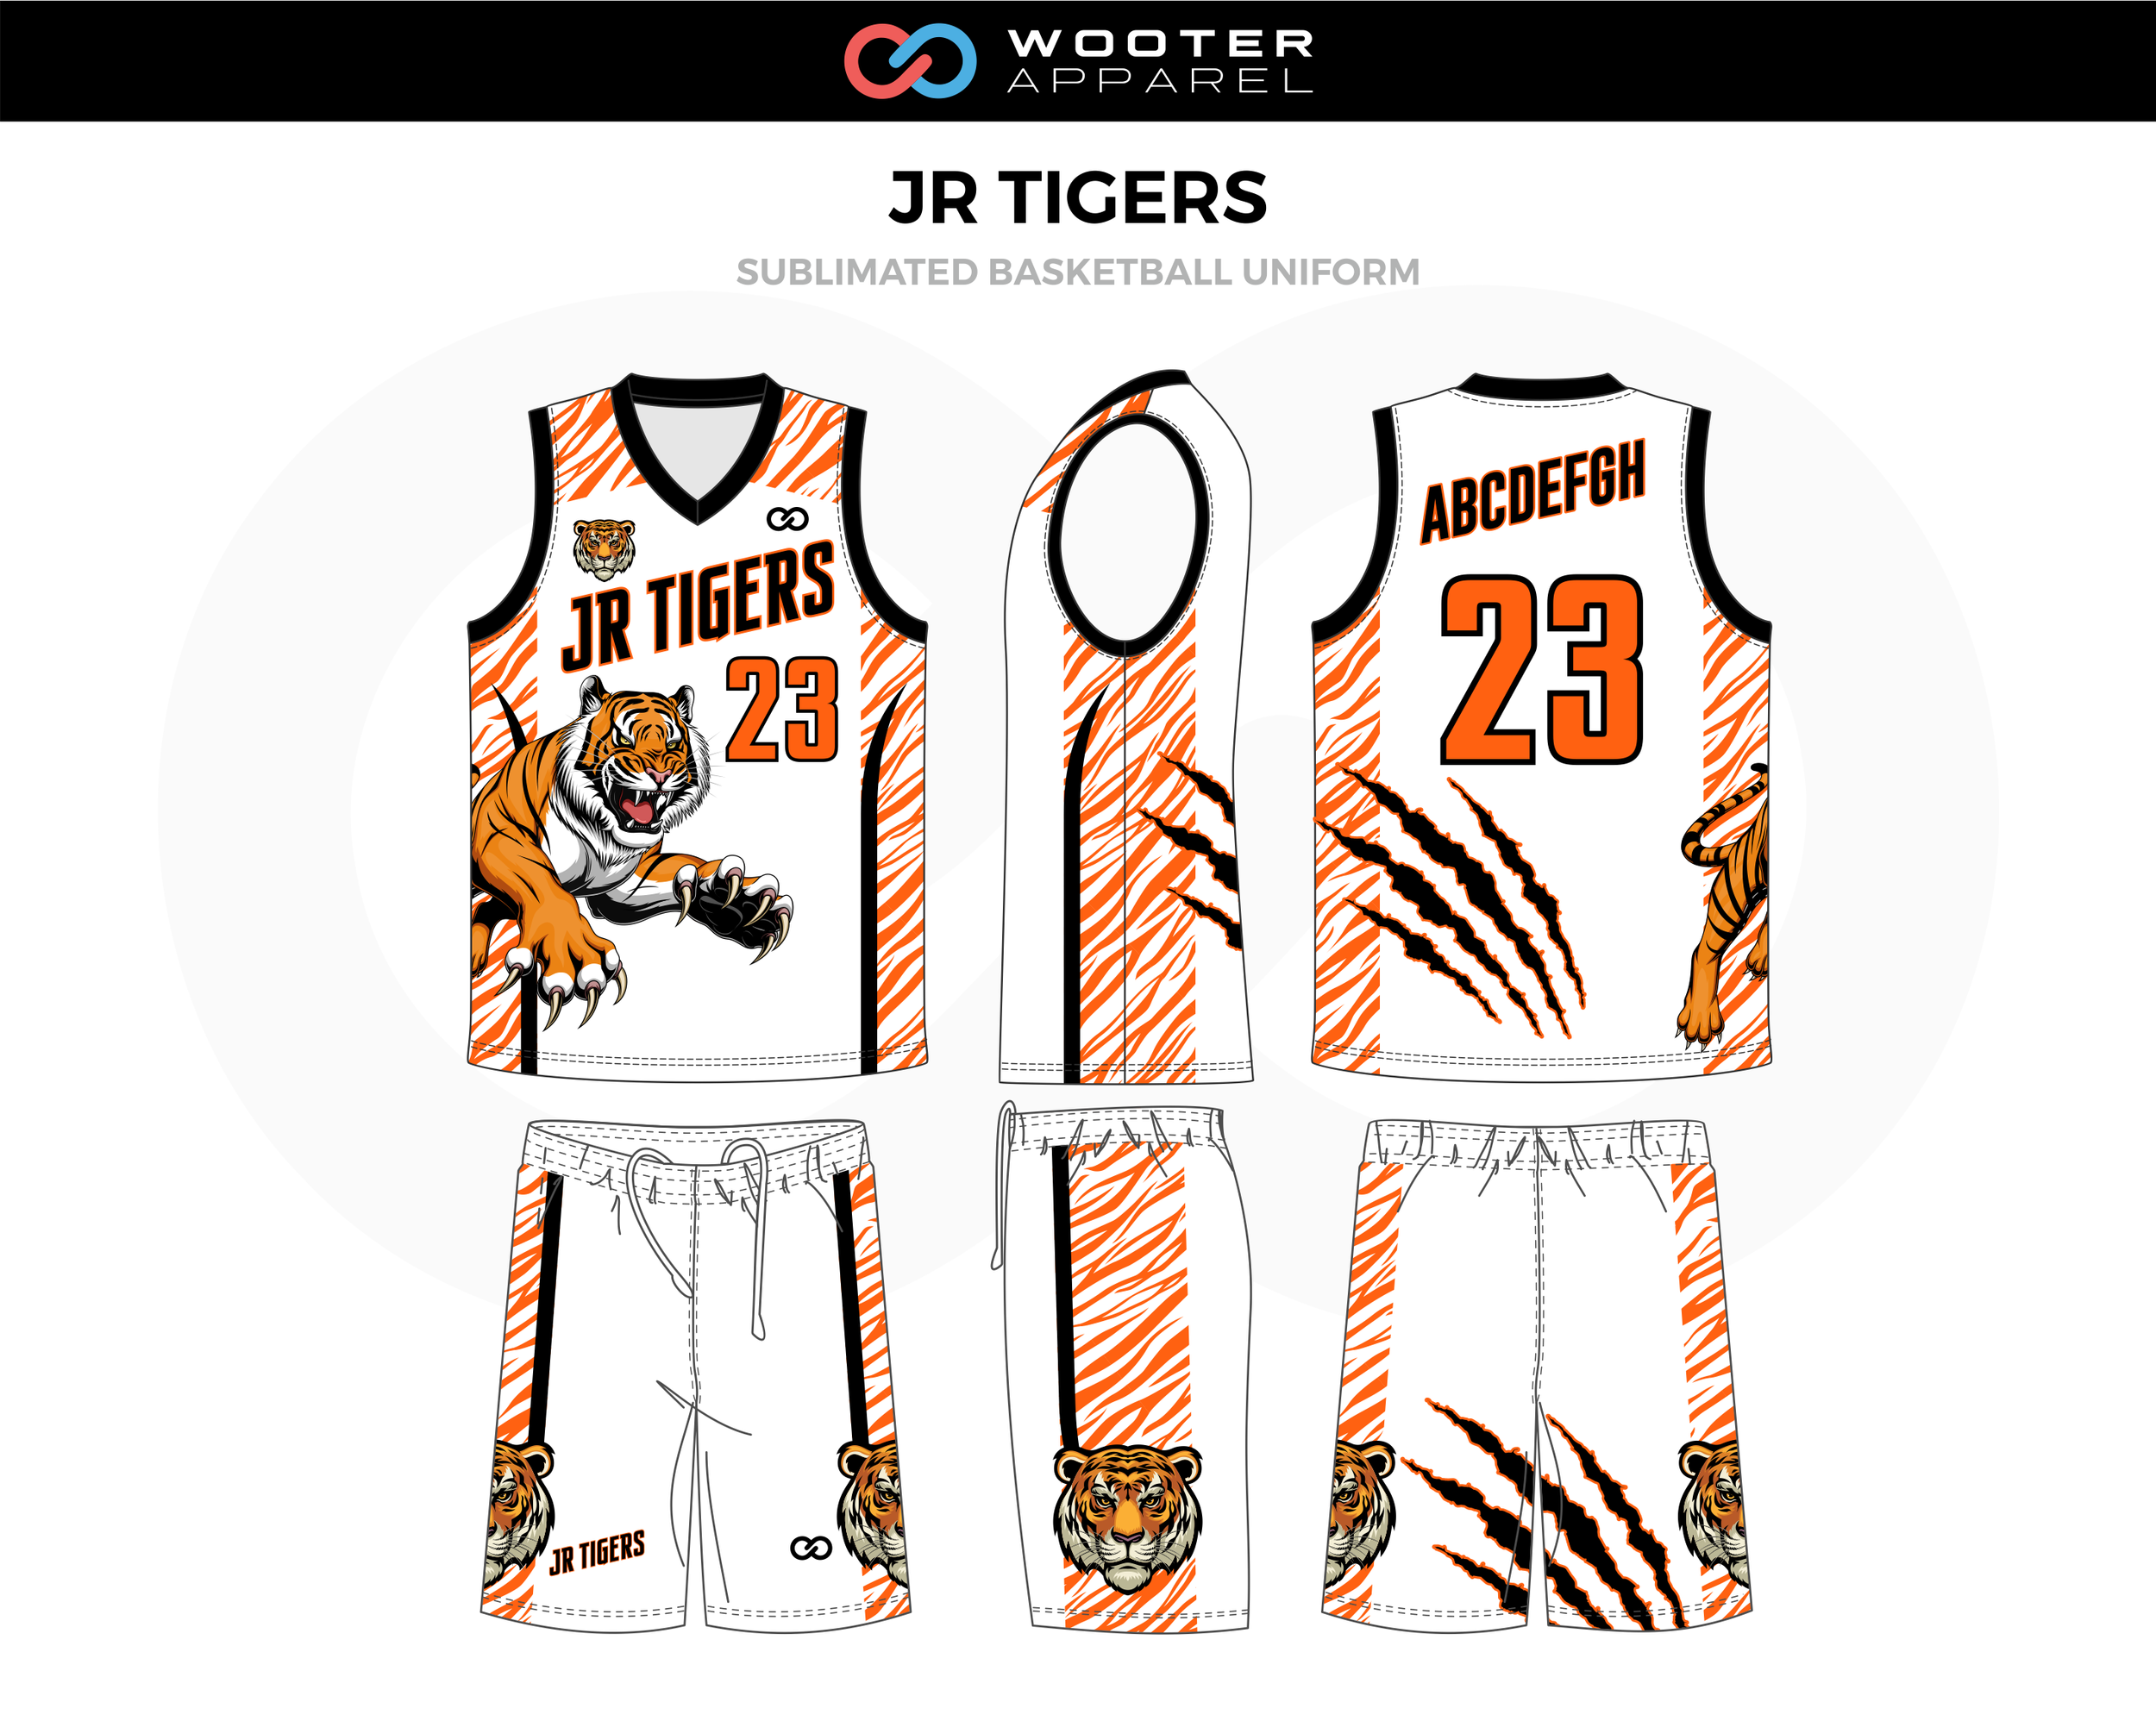 JR TIGERS Black Orange White Basketball Uniform, Jersey and Shorts